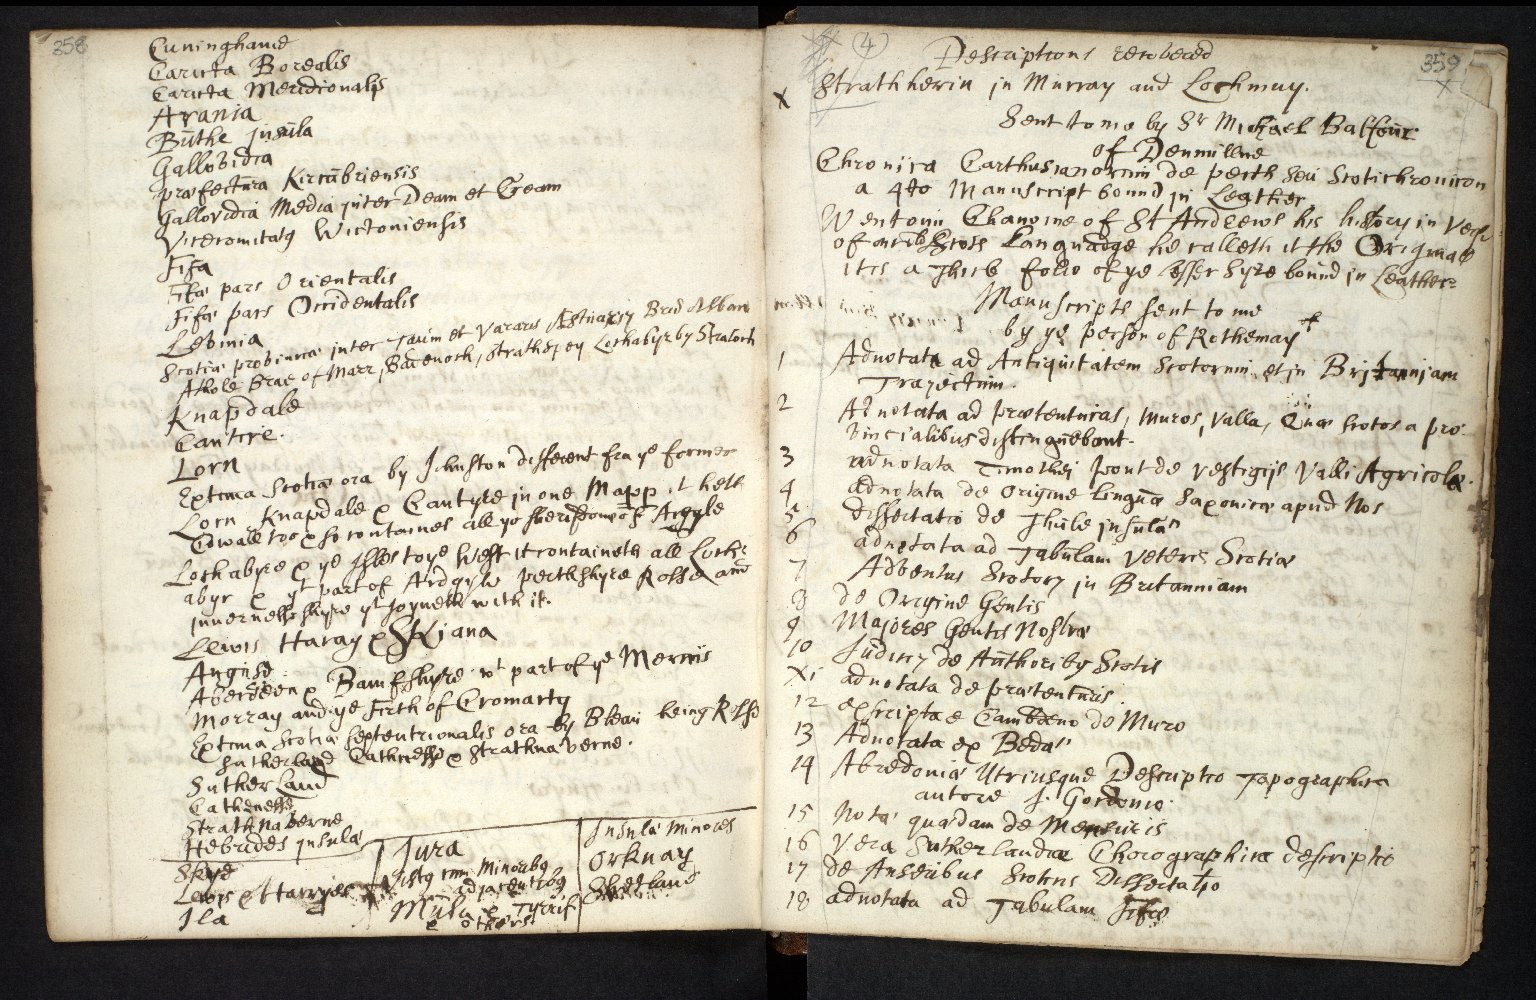 Ane Account of the manuscripts, informations, and printed books sent for compyling the Description of Scotland [6 of 7]